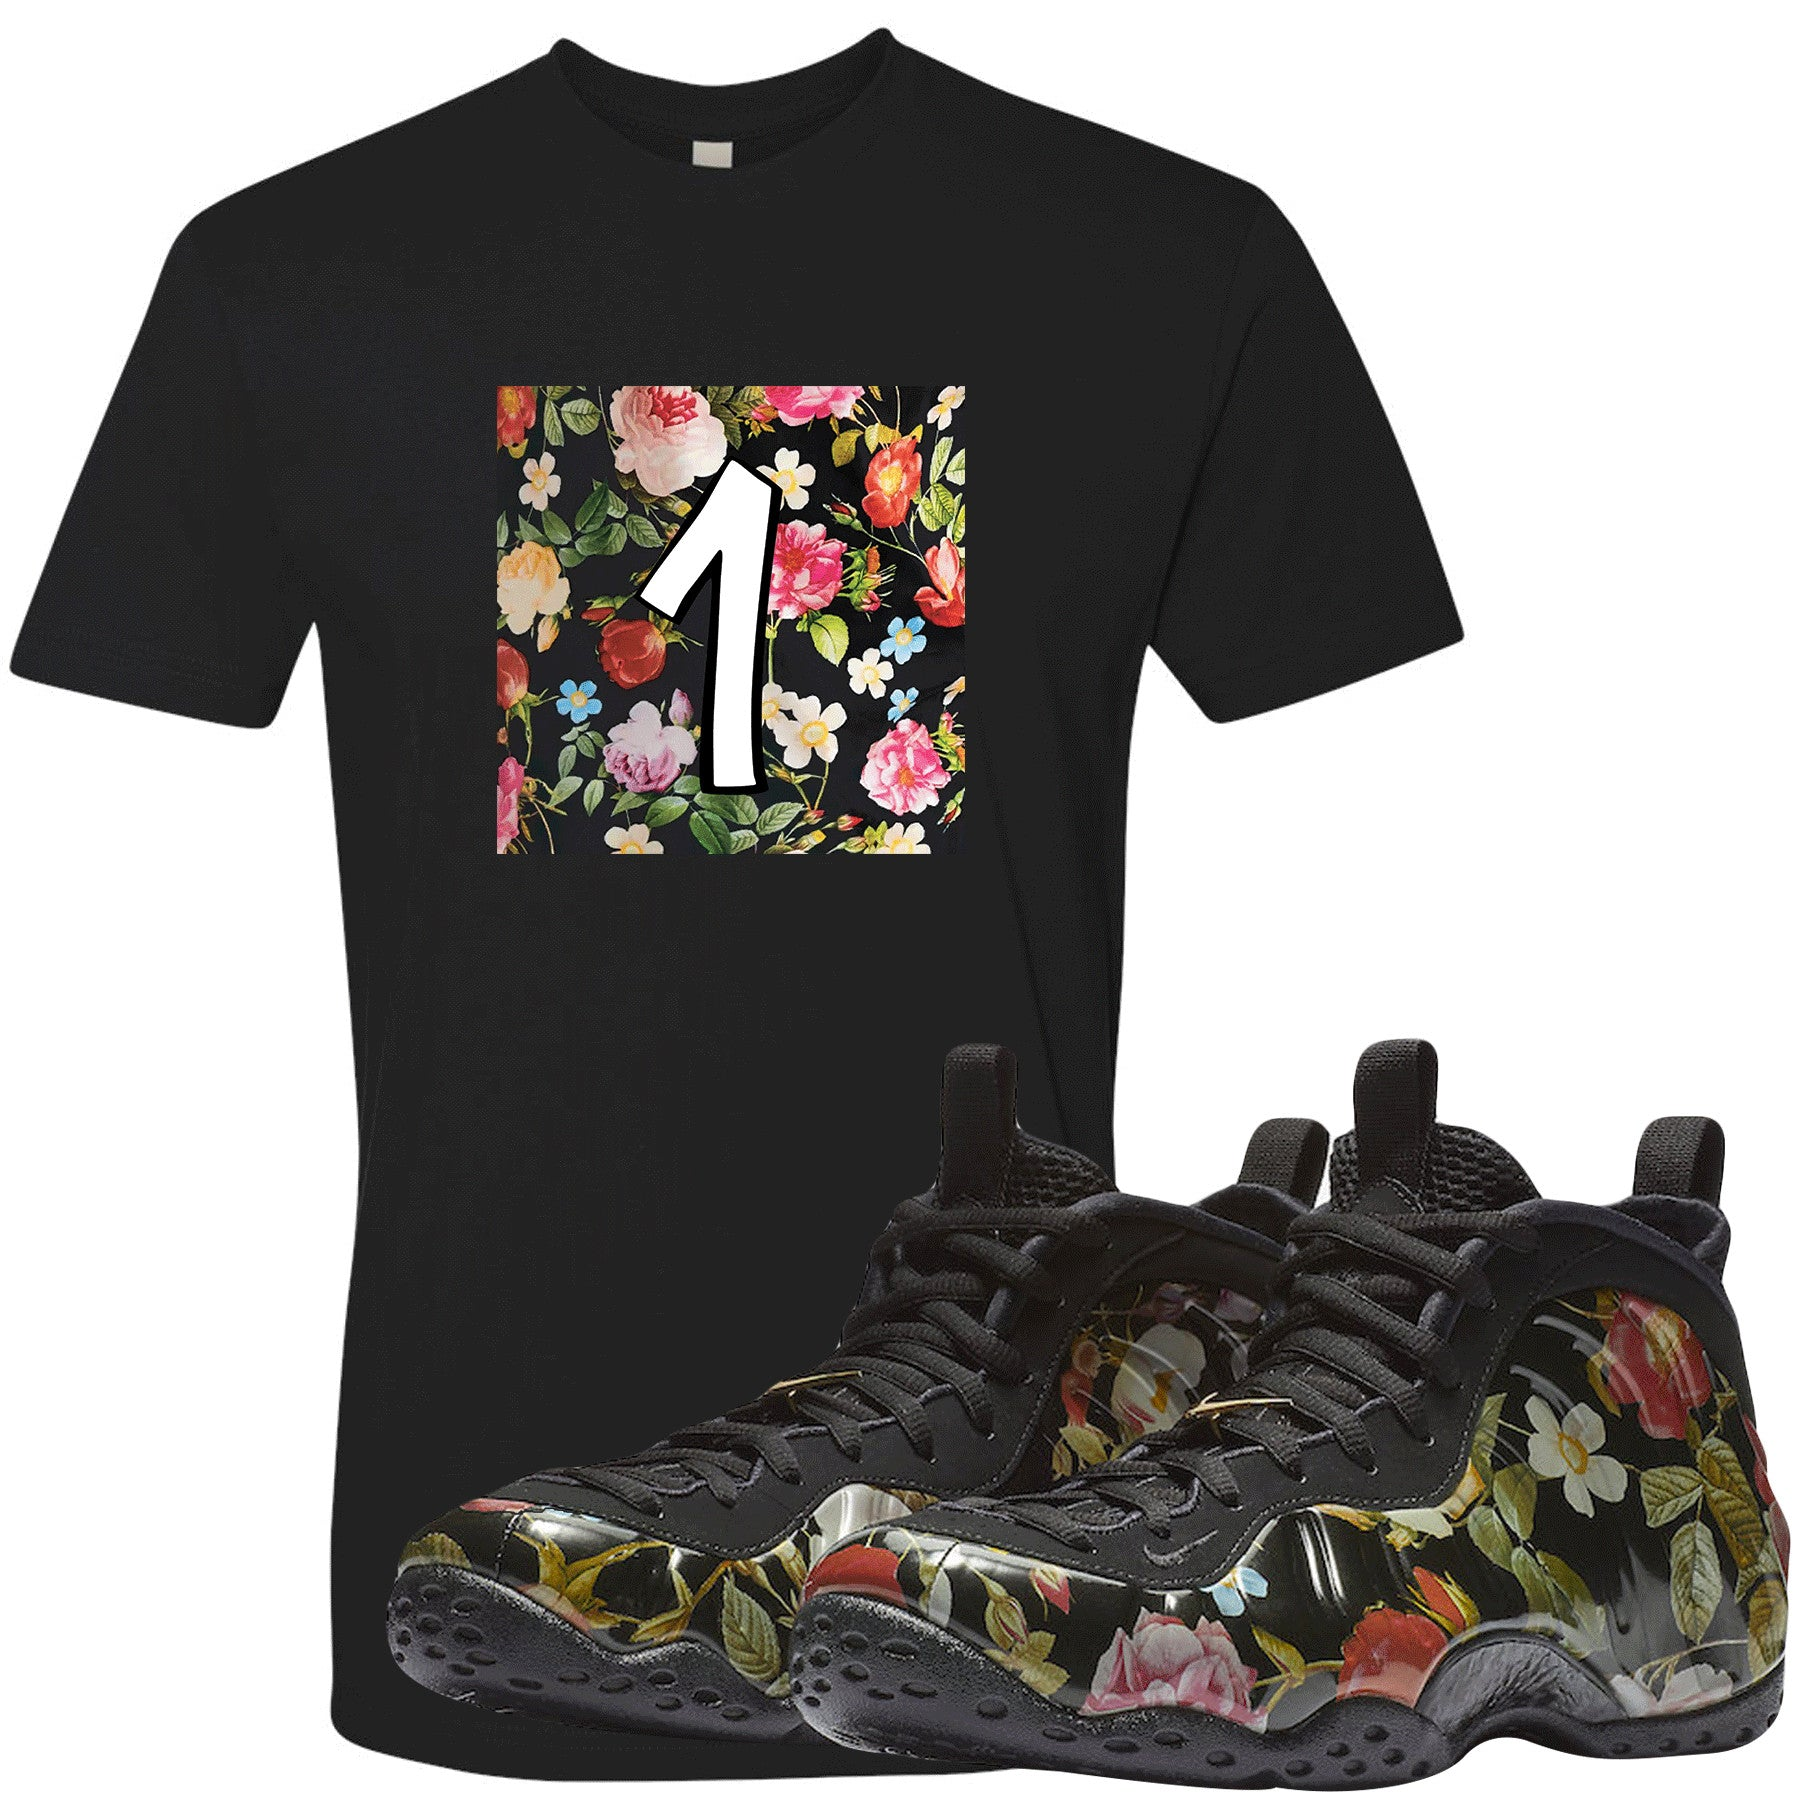 reputable site ed094 75e03 Wear this sneaker matching t-shirt to match your Air Foamposite One Floral  sneakers.